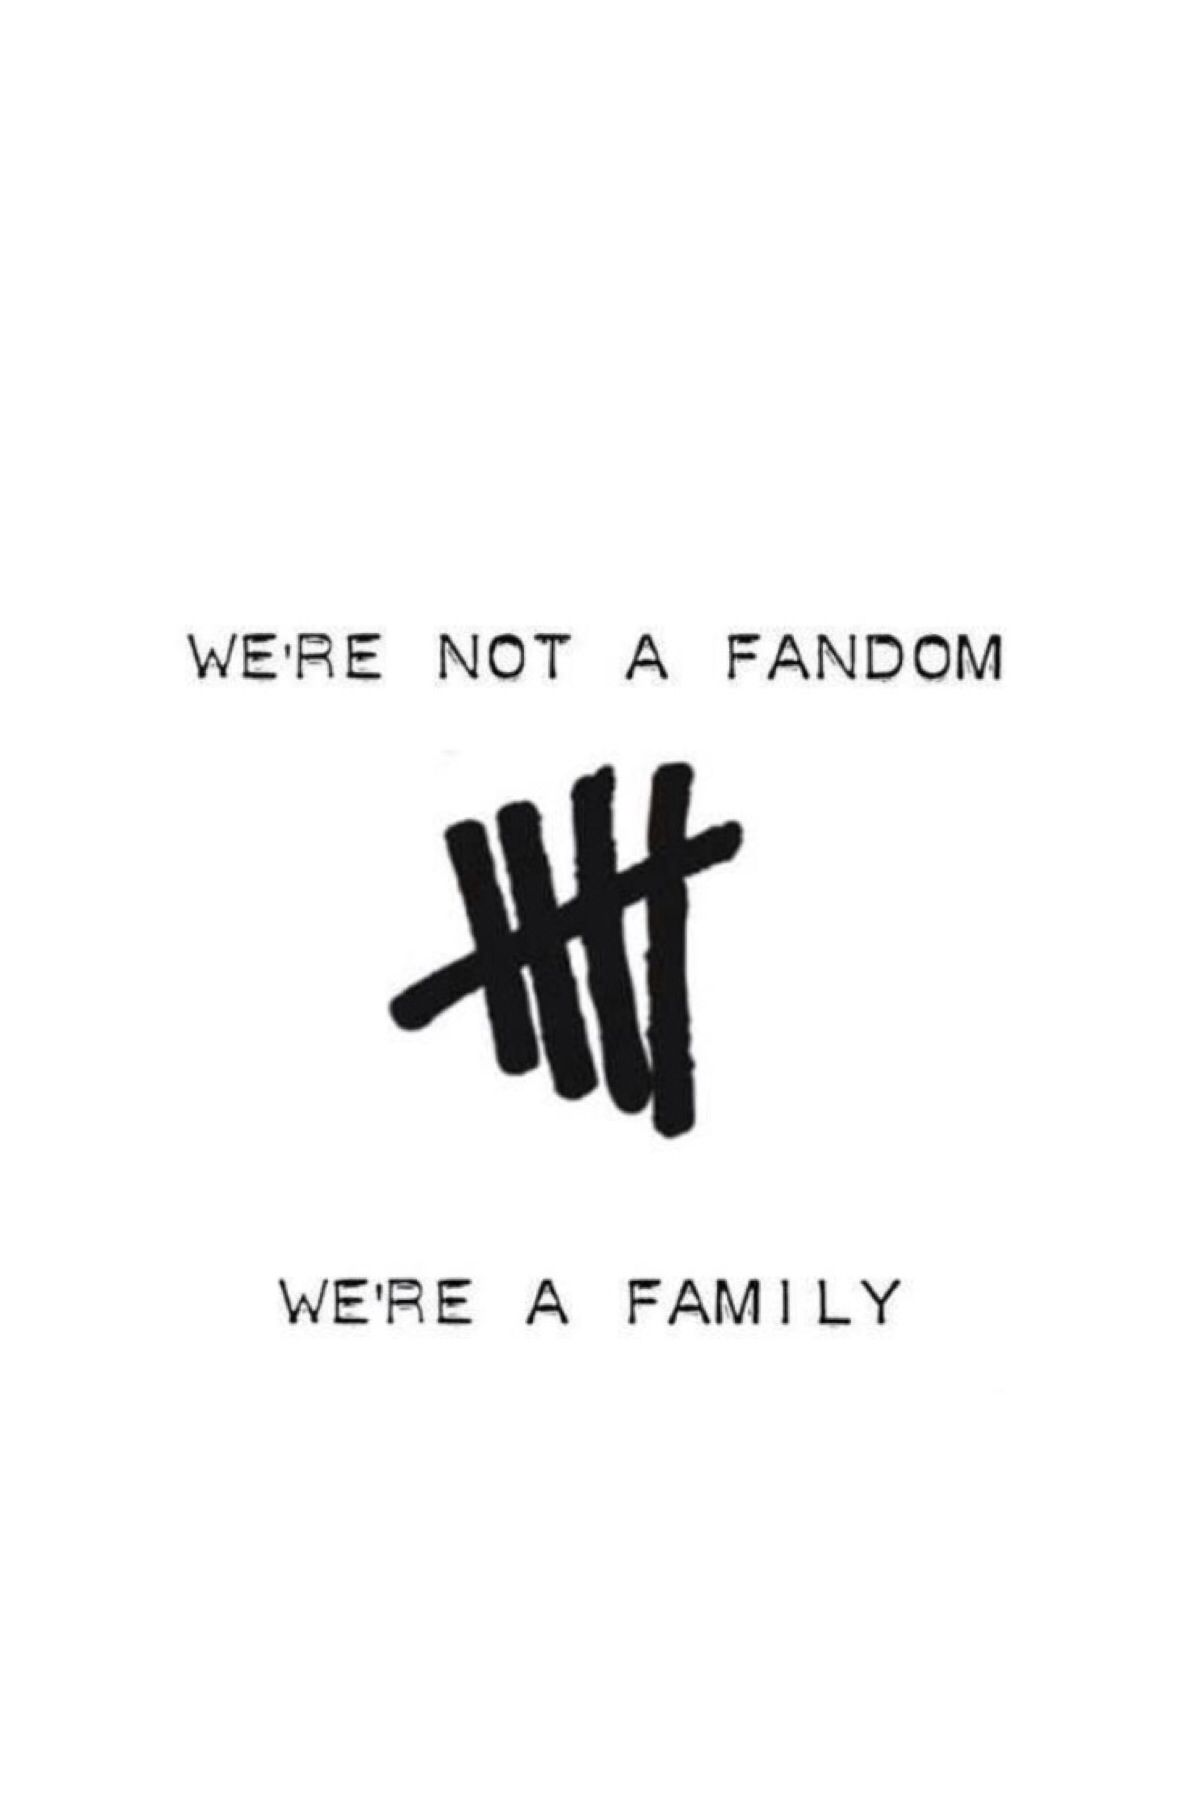 that's why I specified fandoms AND the 5sos fam instead of